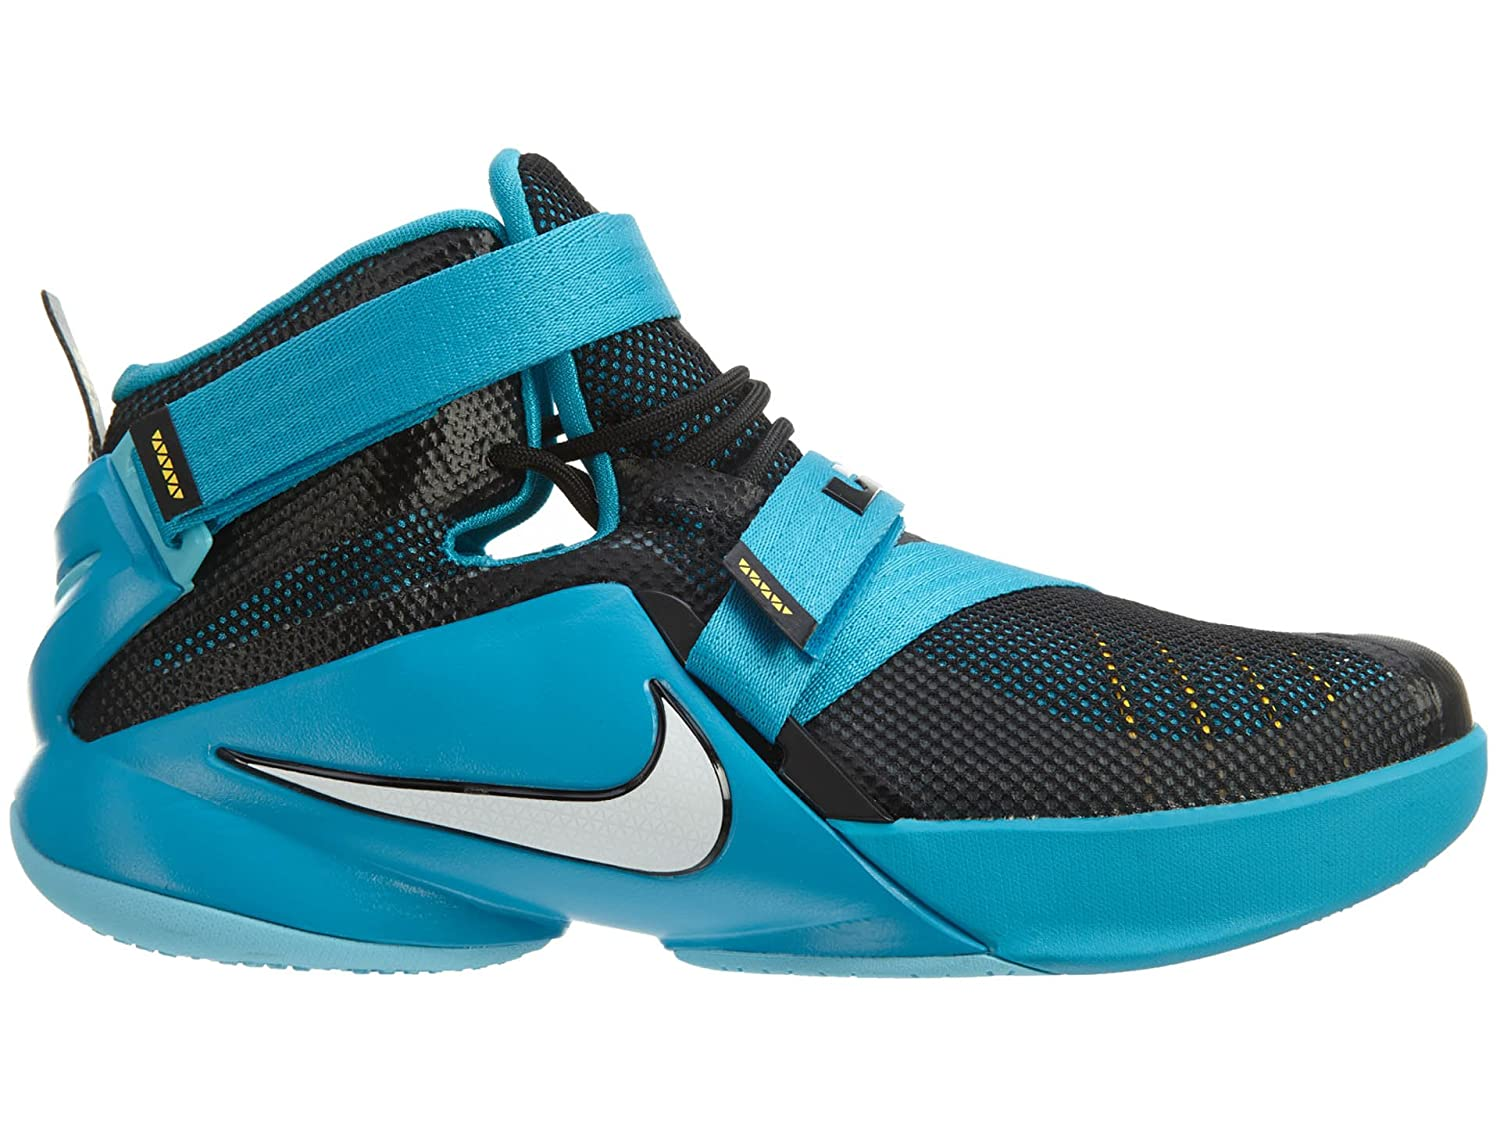 b1931b7686b6 ... for kids 32207 19248 get nike lebron soldier ix big kids style 776471  014 size 7 y us amazon shoes ...